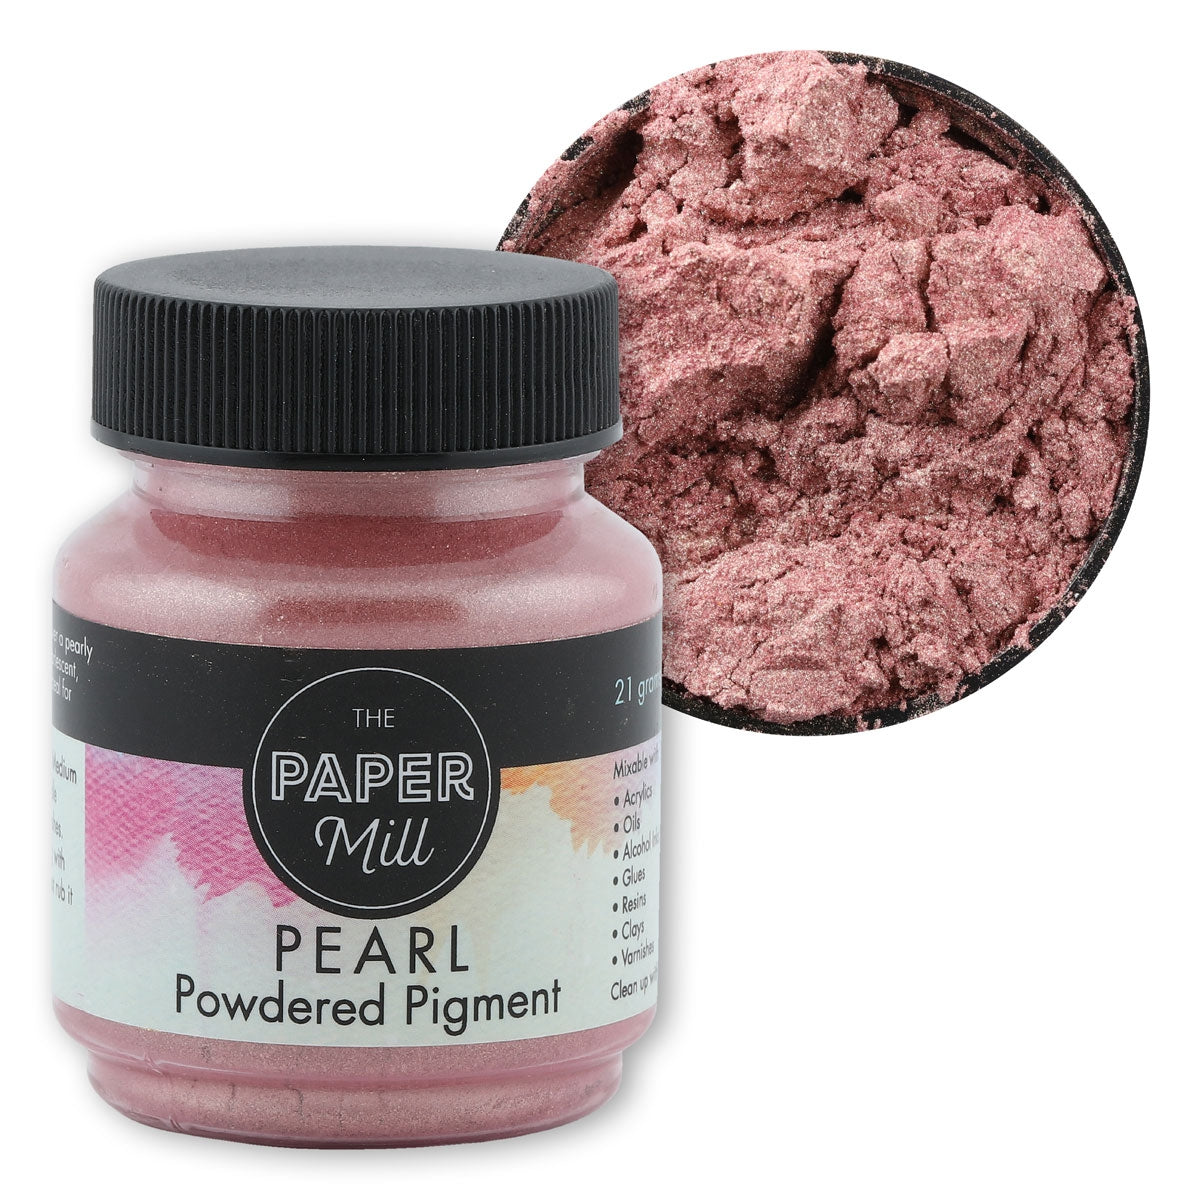 Image of The Paper Mill Pearl Powdered Pigments Range